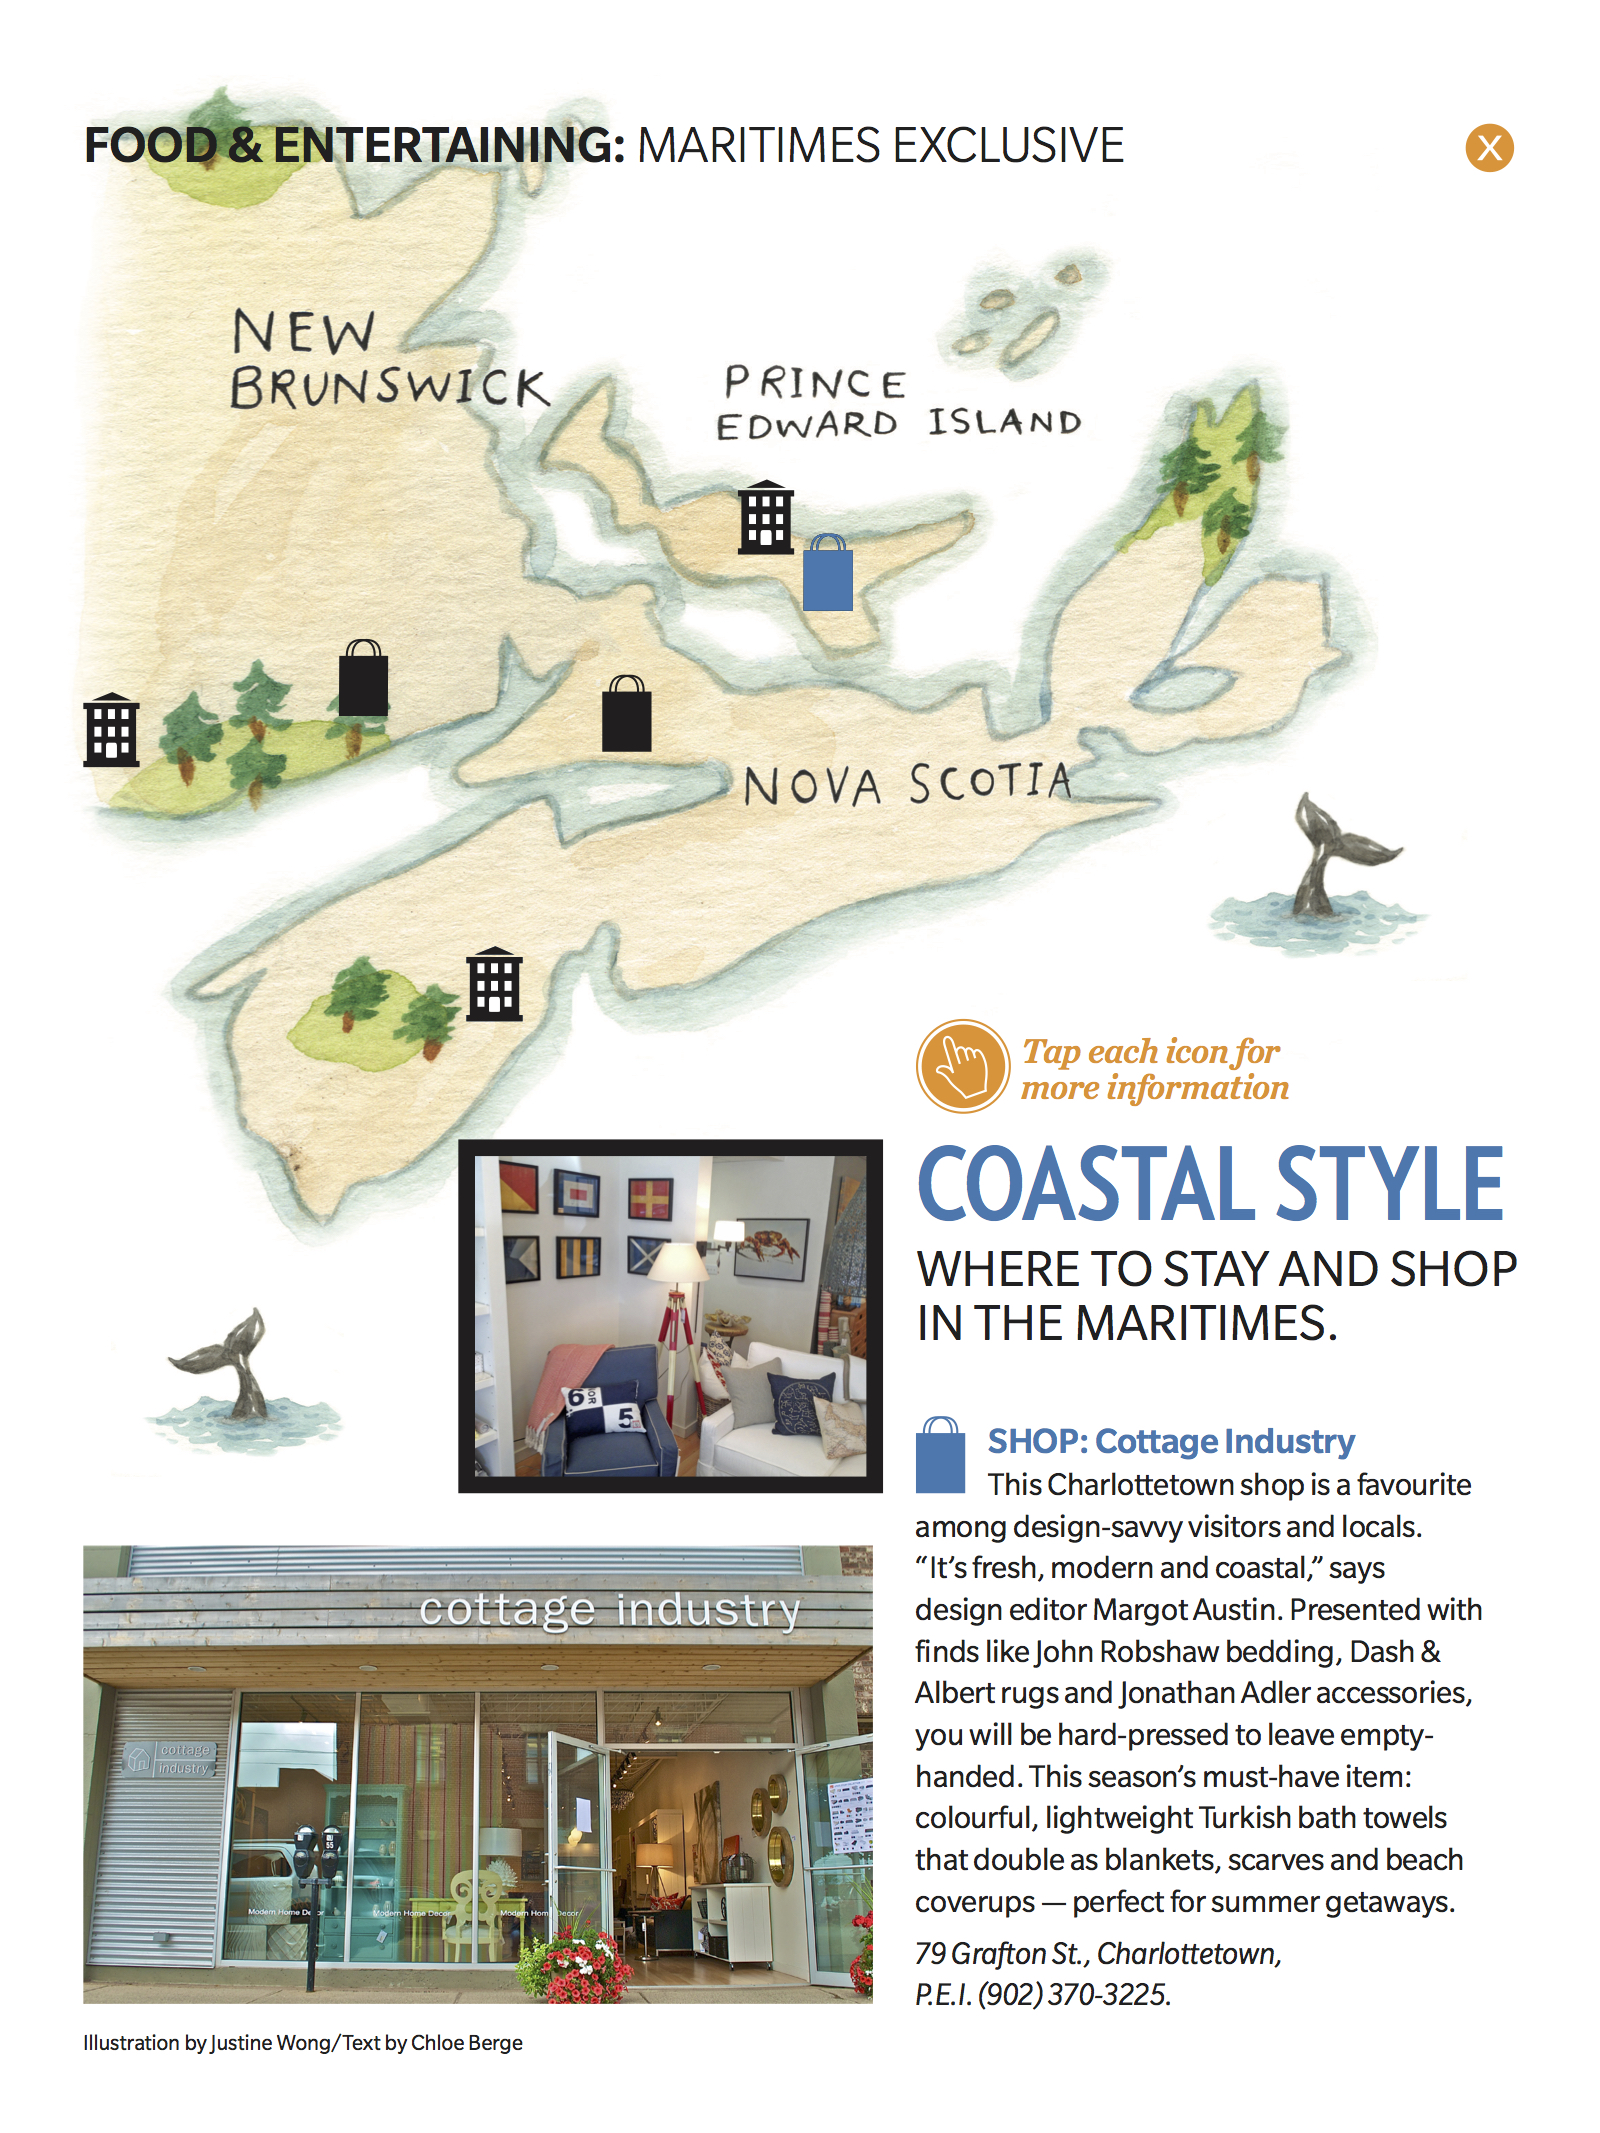 East Coast Travel Guide_House & Home Magazine iPad Edition_July 20144.jpg